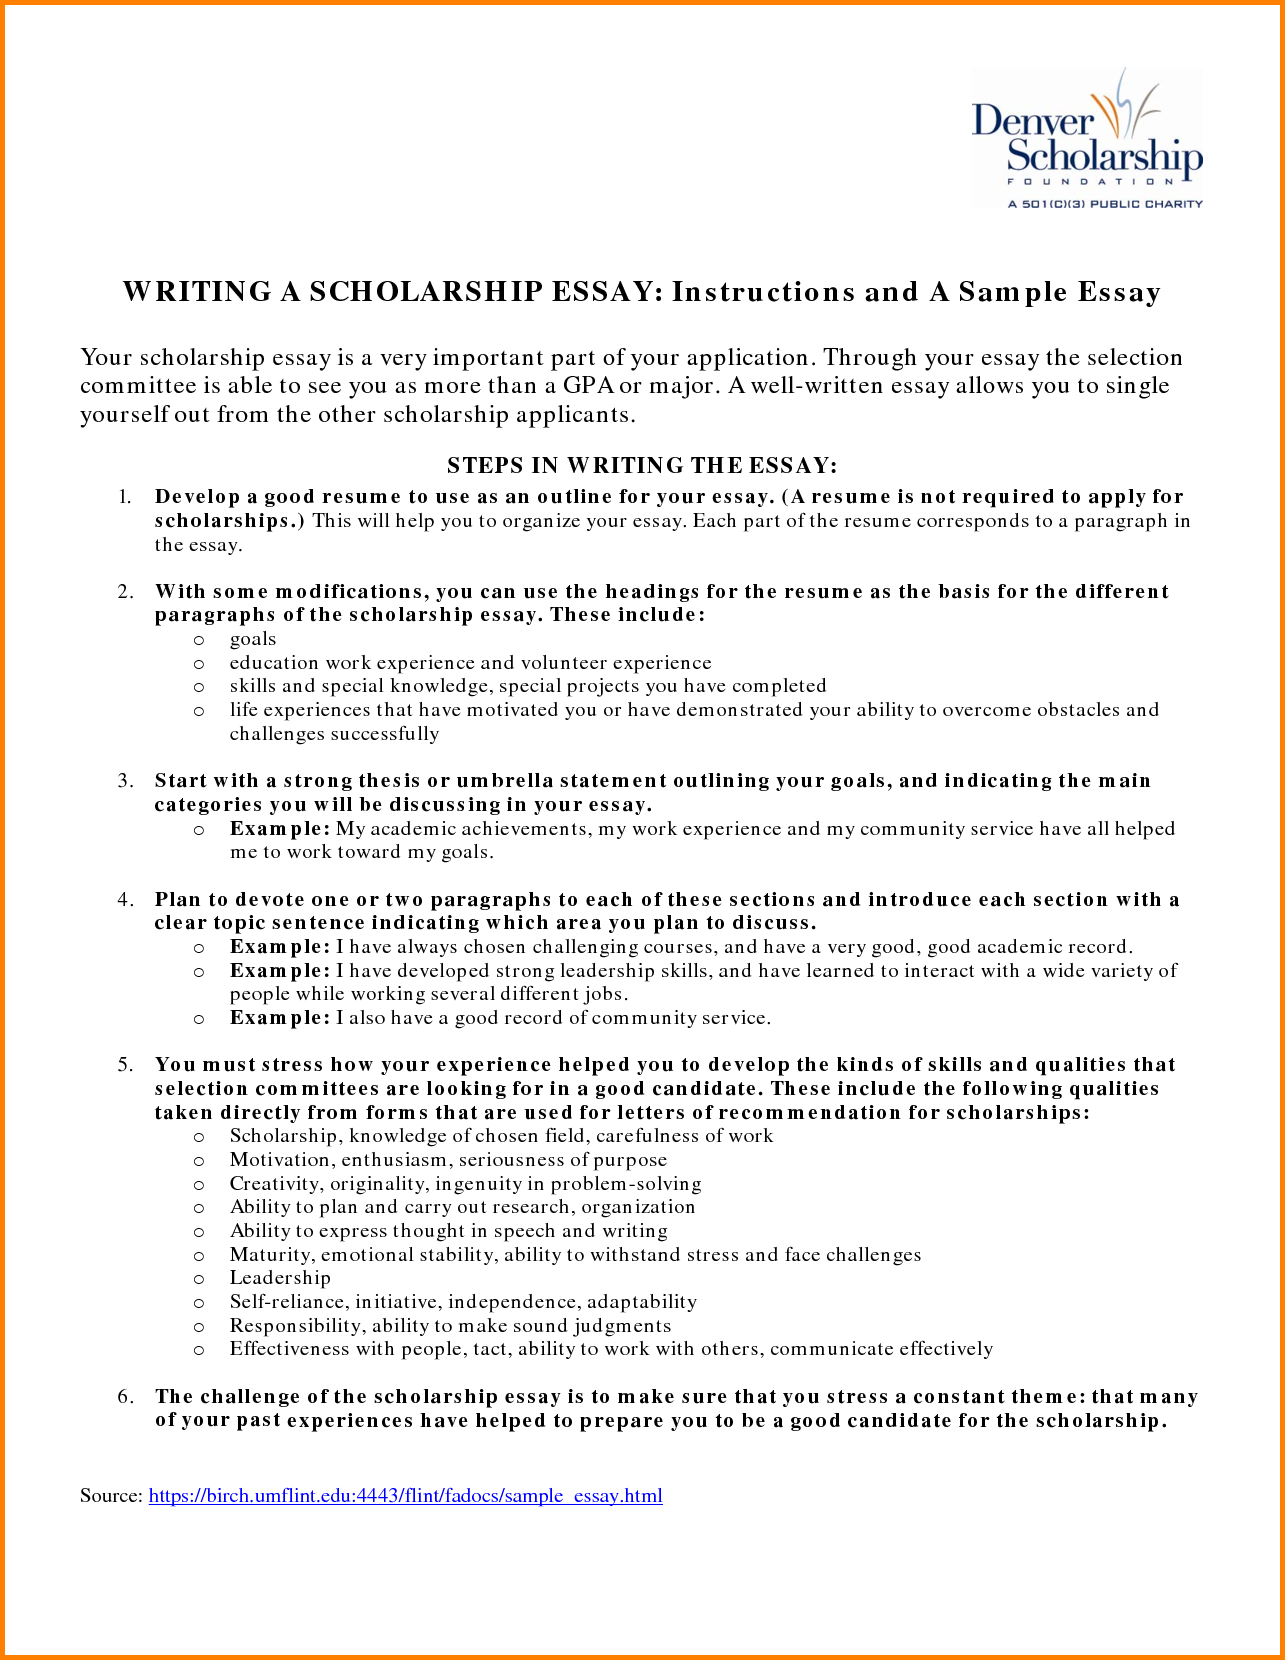 023 Inspiration Resume Examples For Scholarships With Nursing Scholarship Application Essay Example Fair In Sampl Nurse Staggering Samples Why You Deserve Questions Full